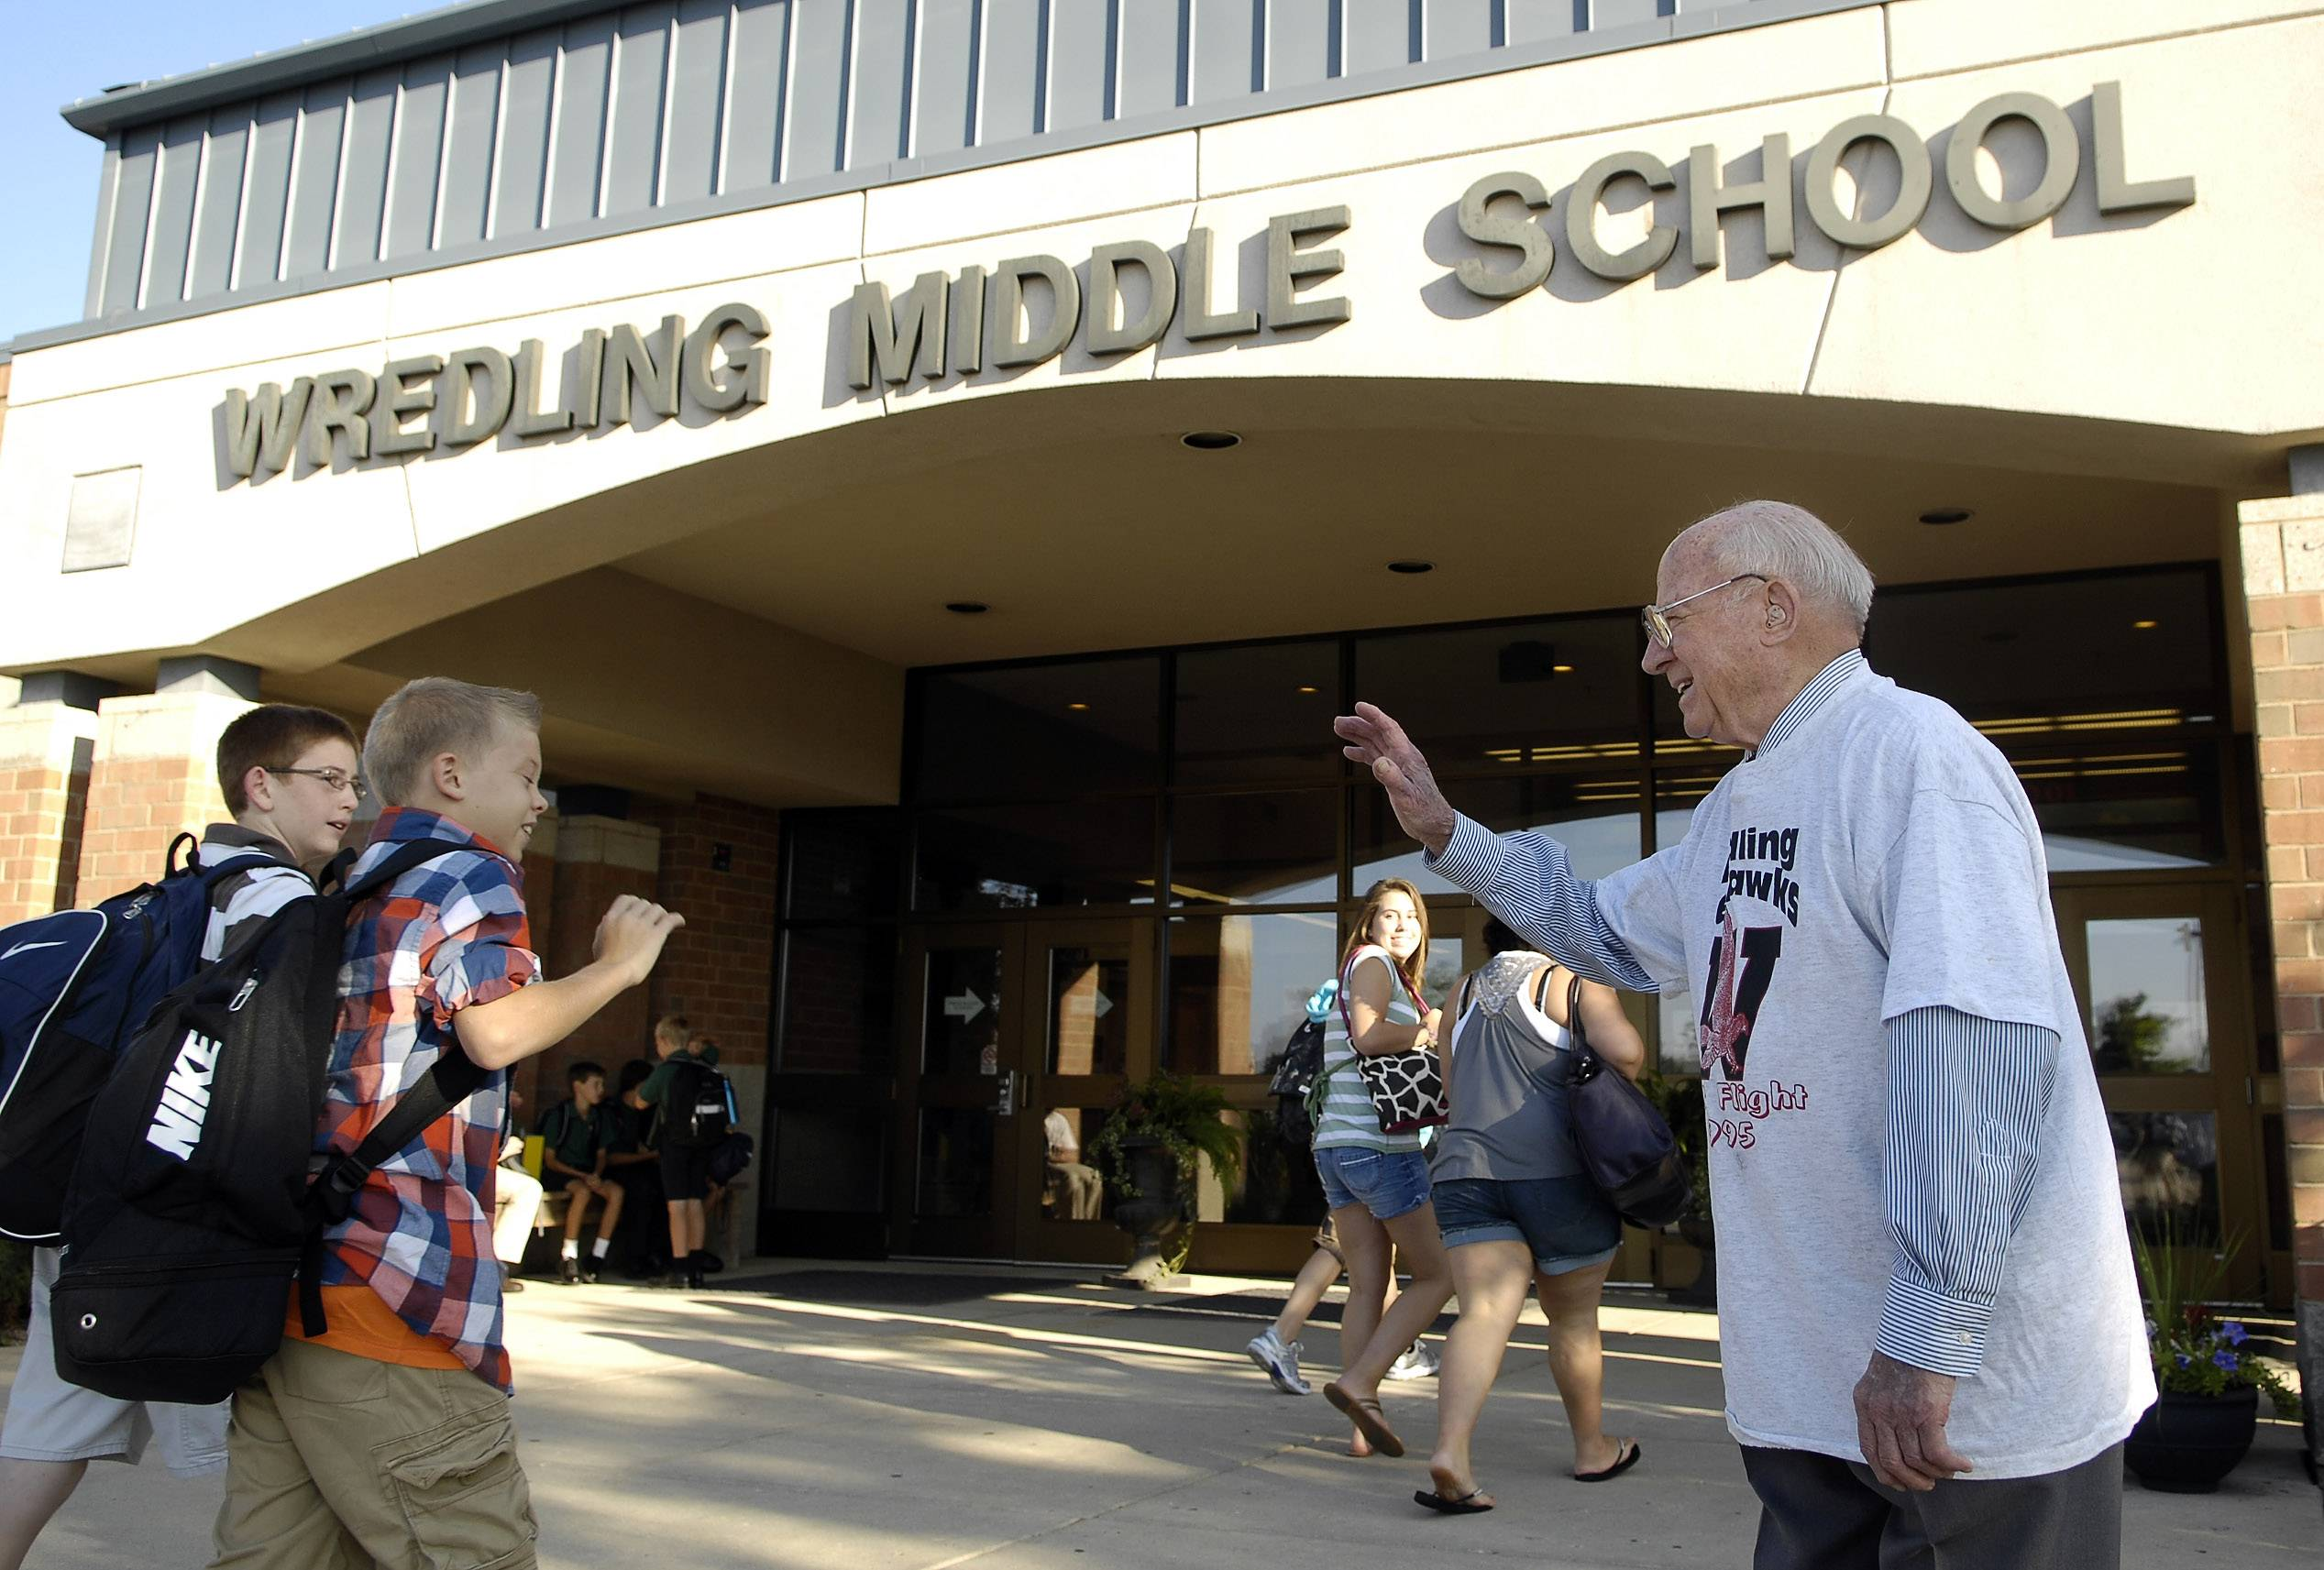 John Wredling, here greeting students before the first day of school at Wredling Middle School, will be the grand marshal of the St. Charles St. Patrick's Day Parade. Wredling, a former St. Charles District 303 superintendent, will be celebrating his 100th birthday Monday.